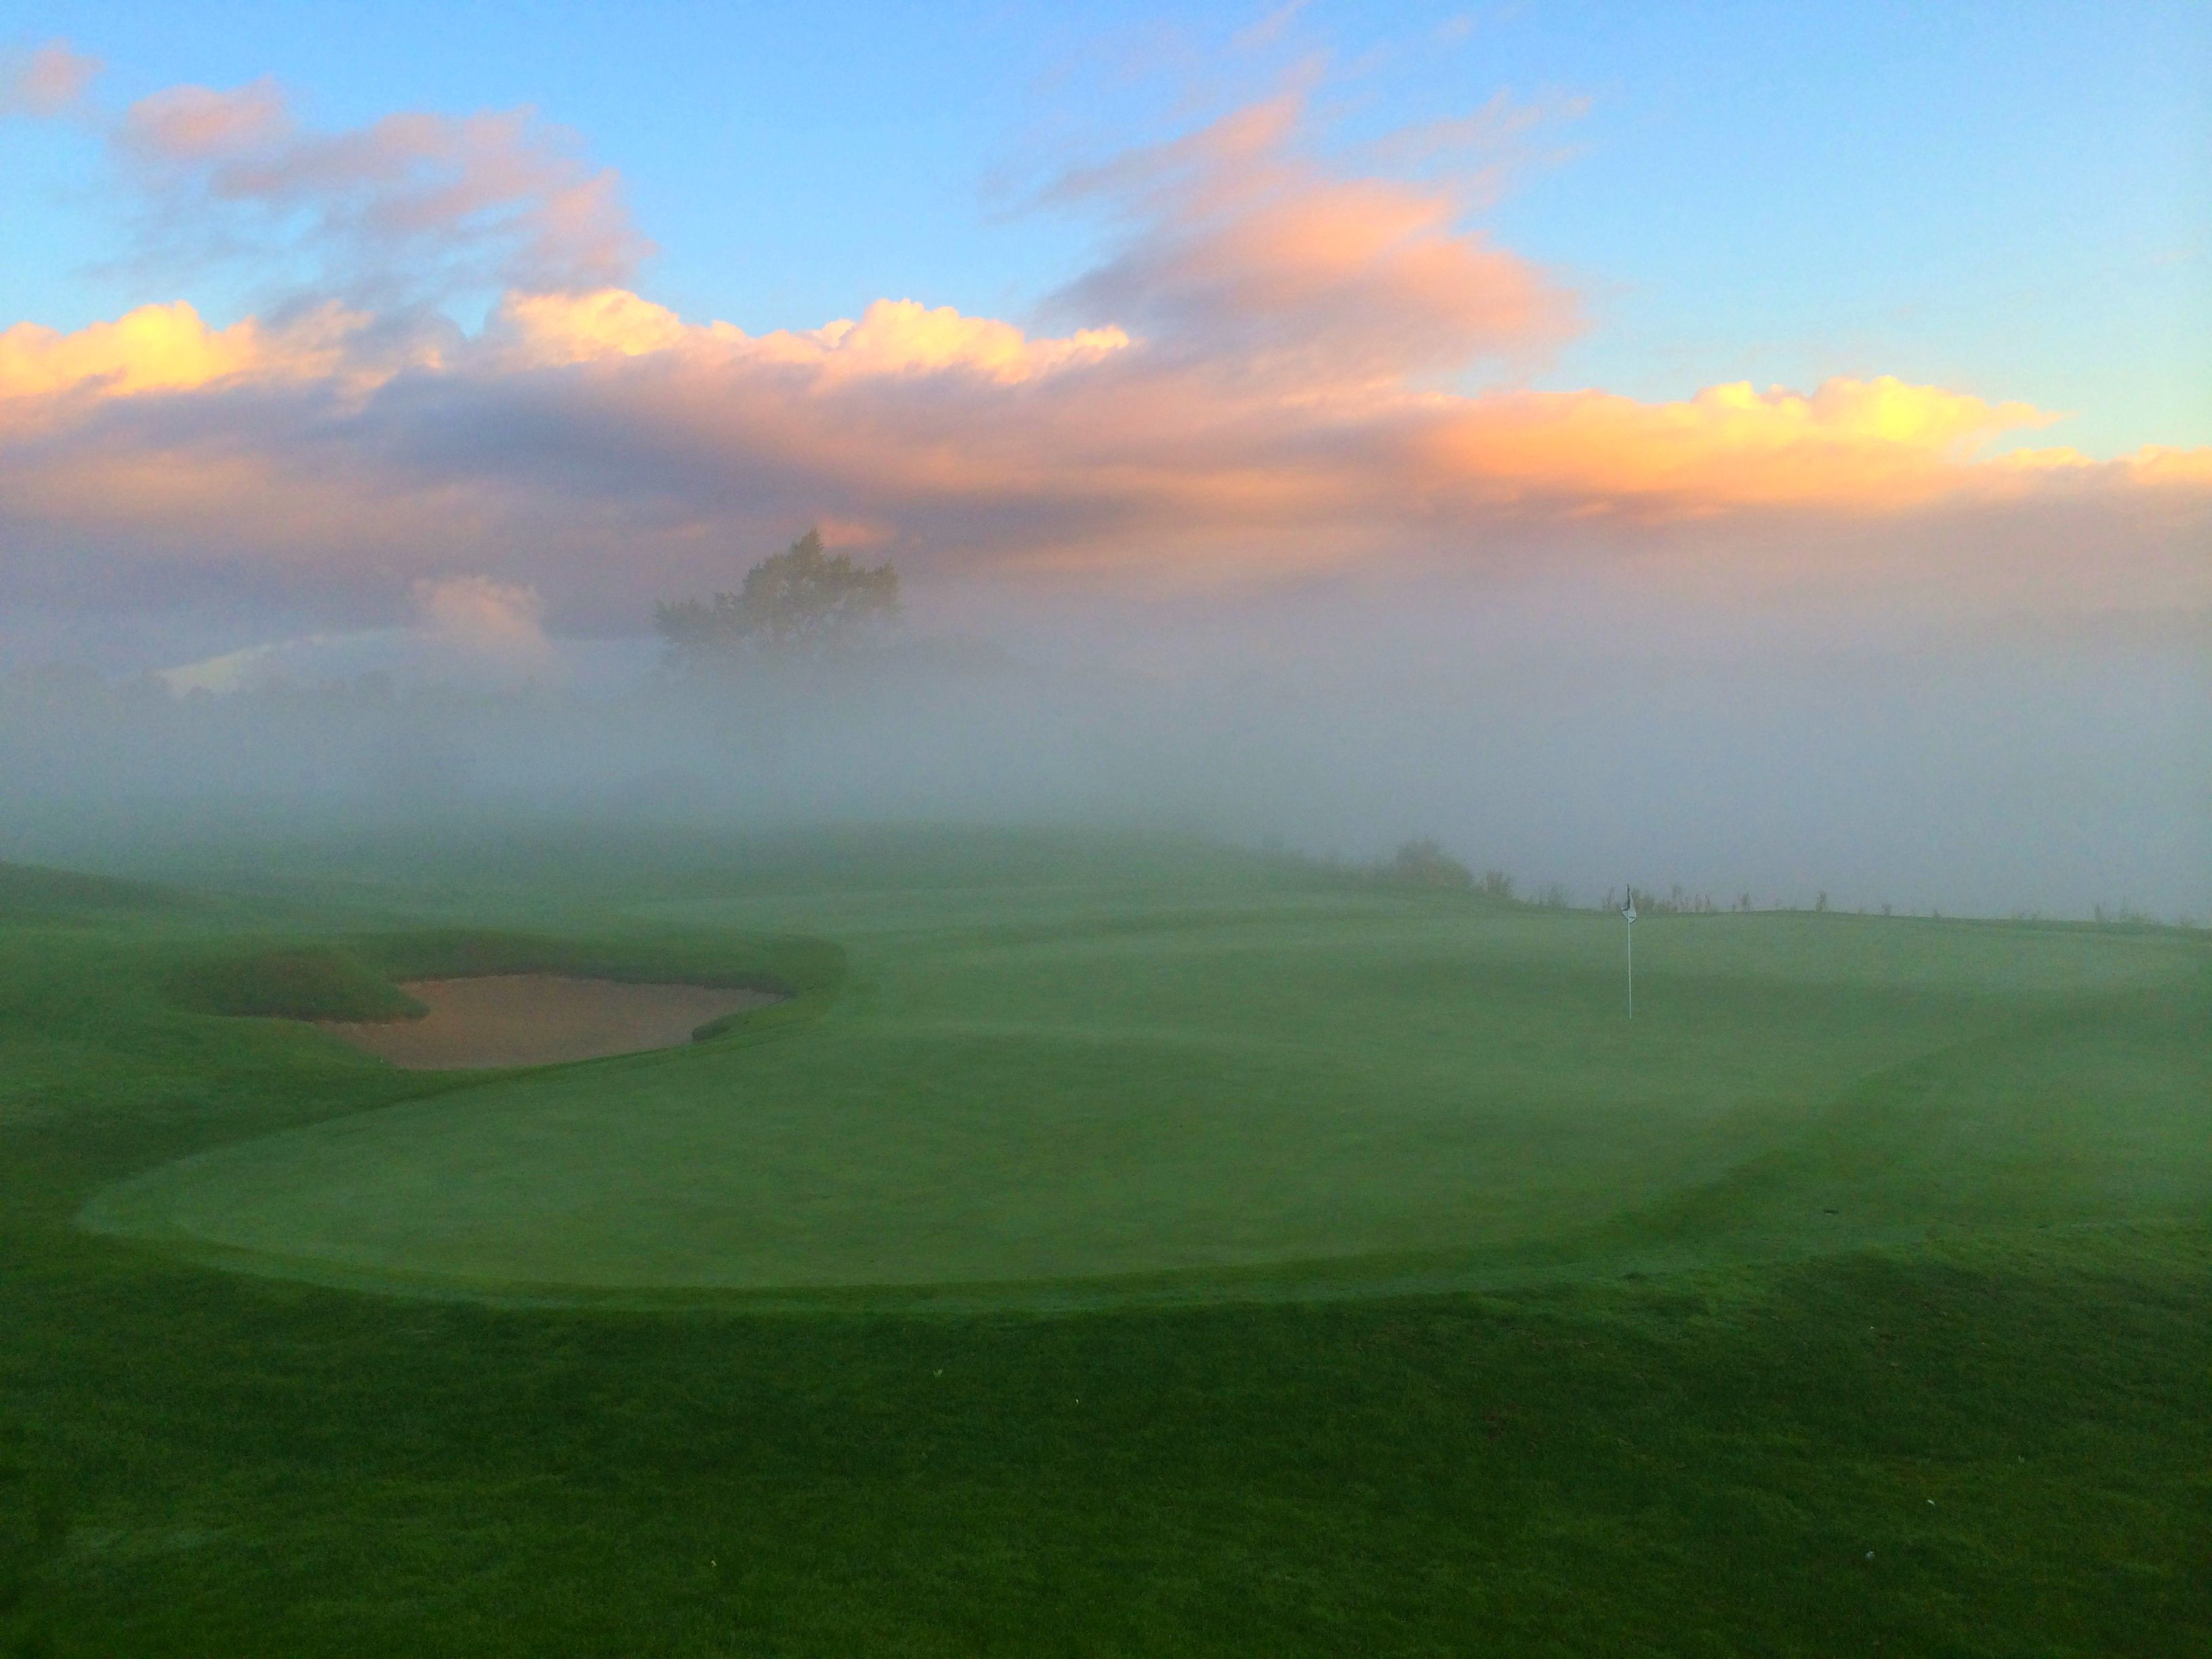 Hole #18 on The Bear at Grand Traverse Resort and Spa on a foggy morning.